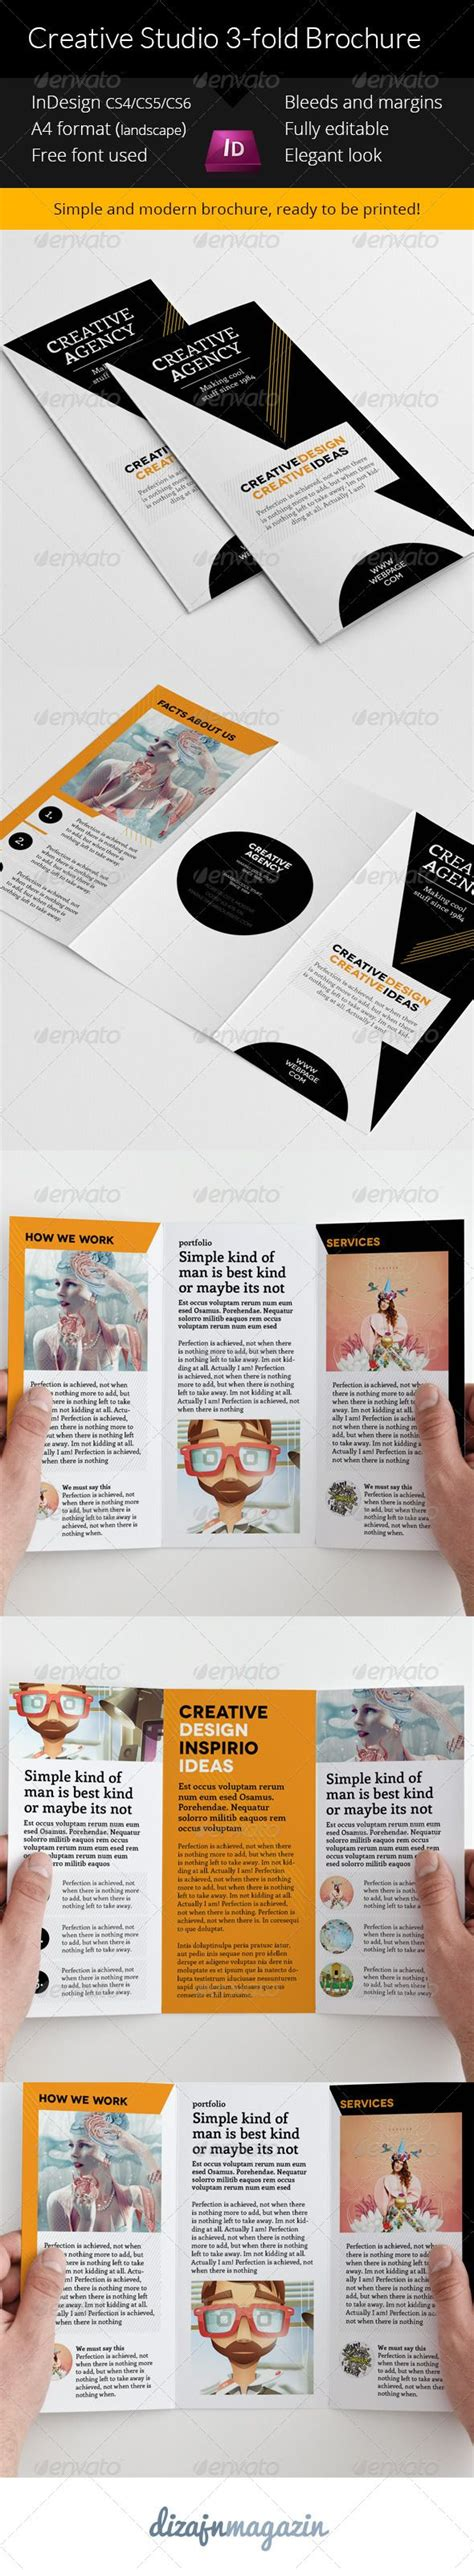 17 best images about branding mood board on pinterest